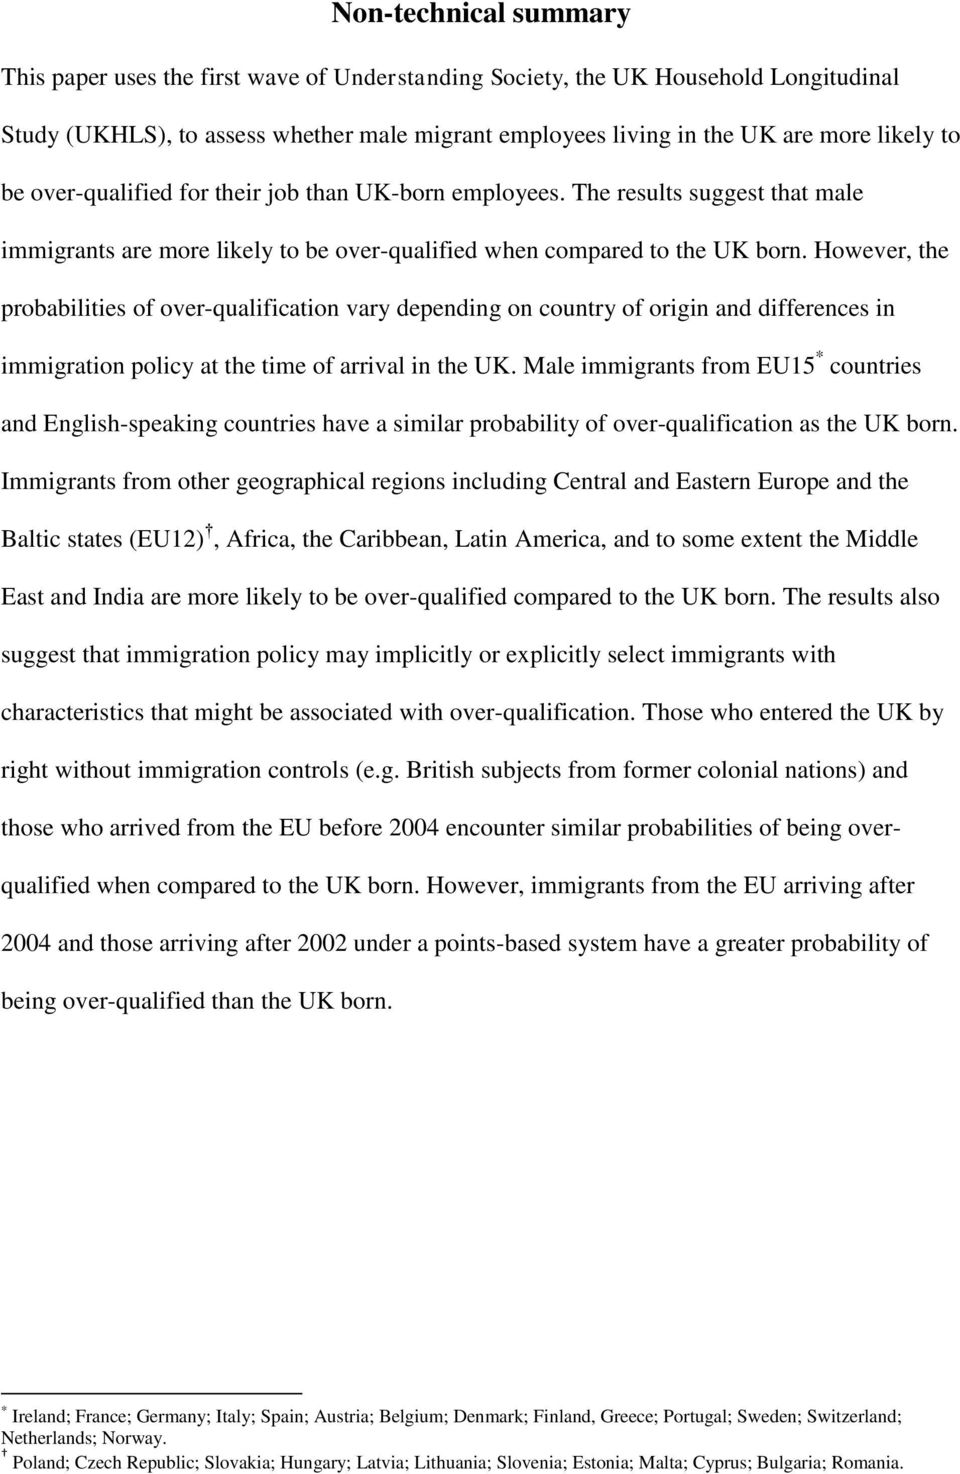 However, the probabilities of over-qualification vary depending on country of origin and differences in immigration policy at the time of arrival in the UK.